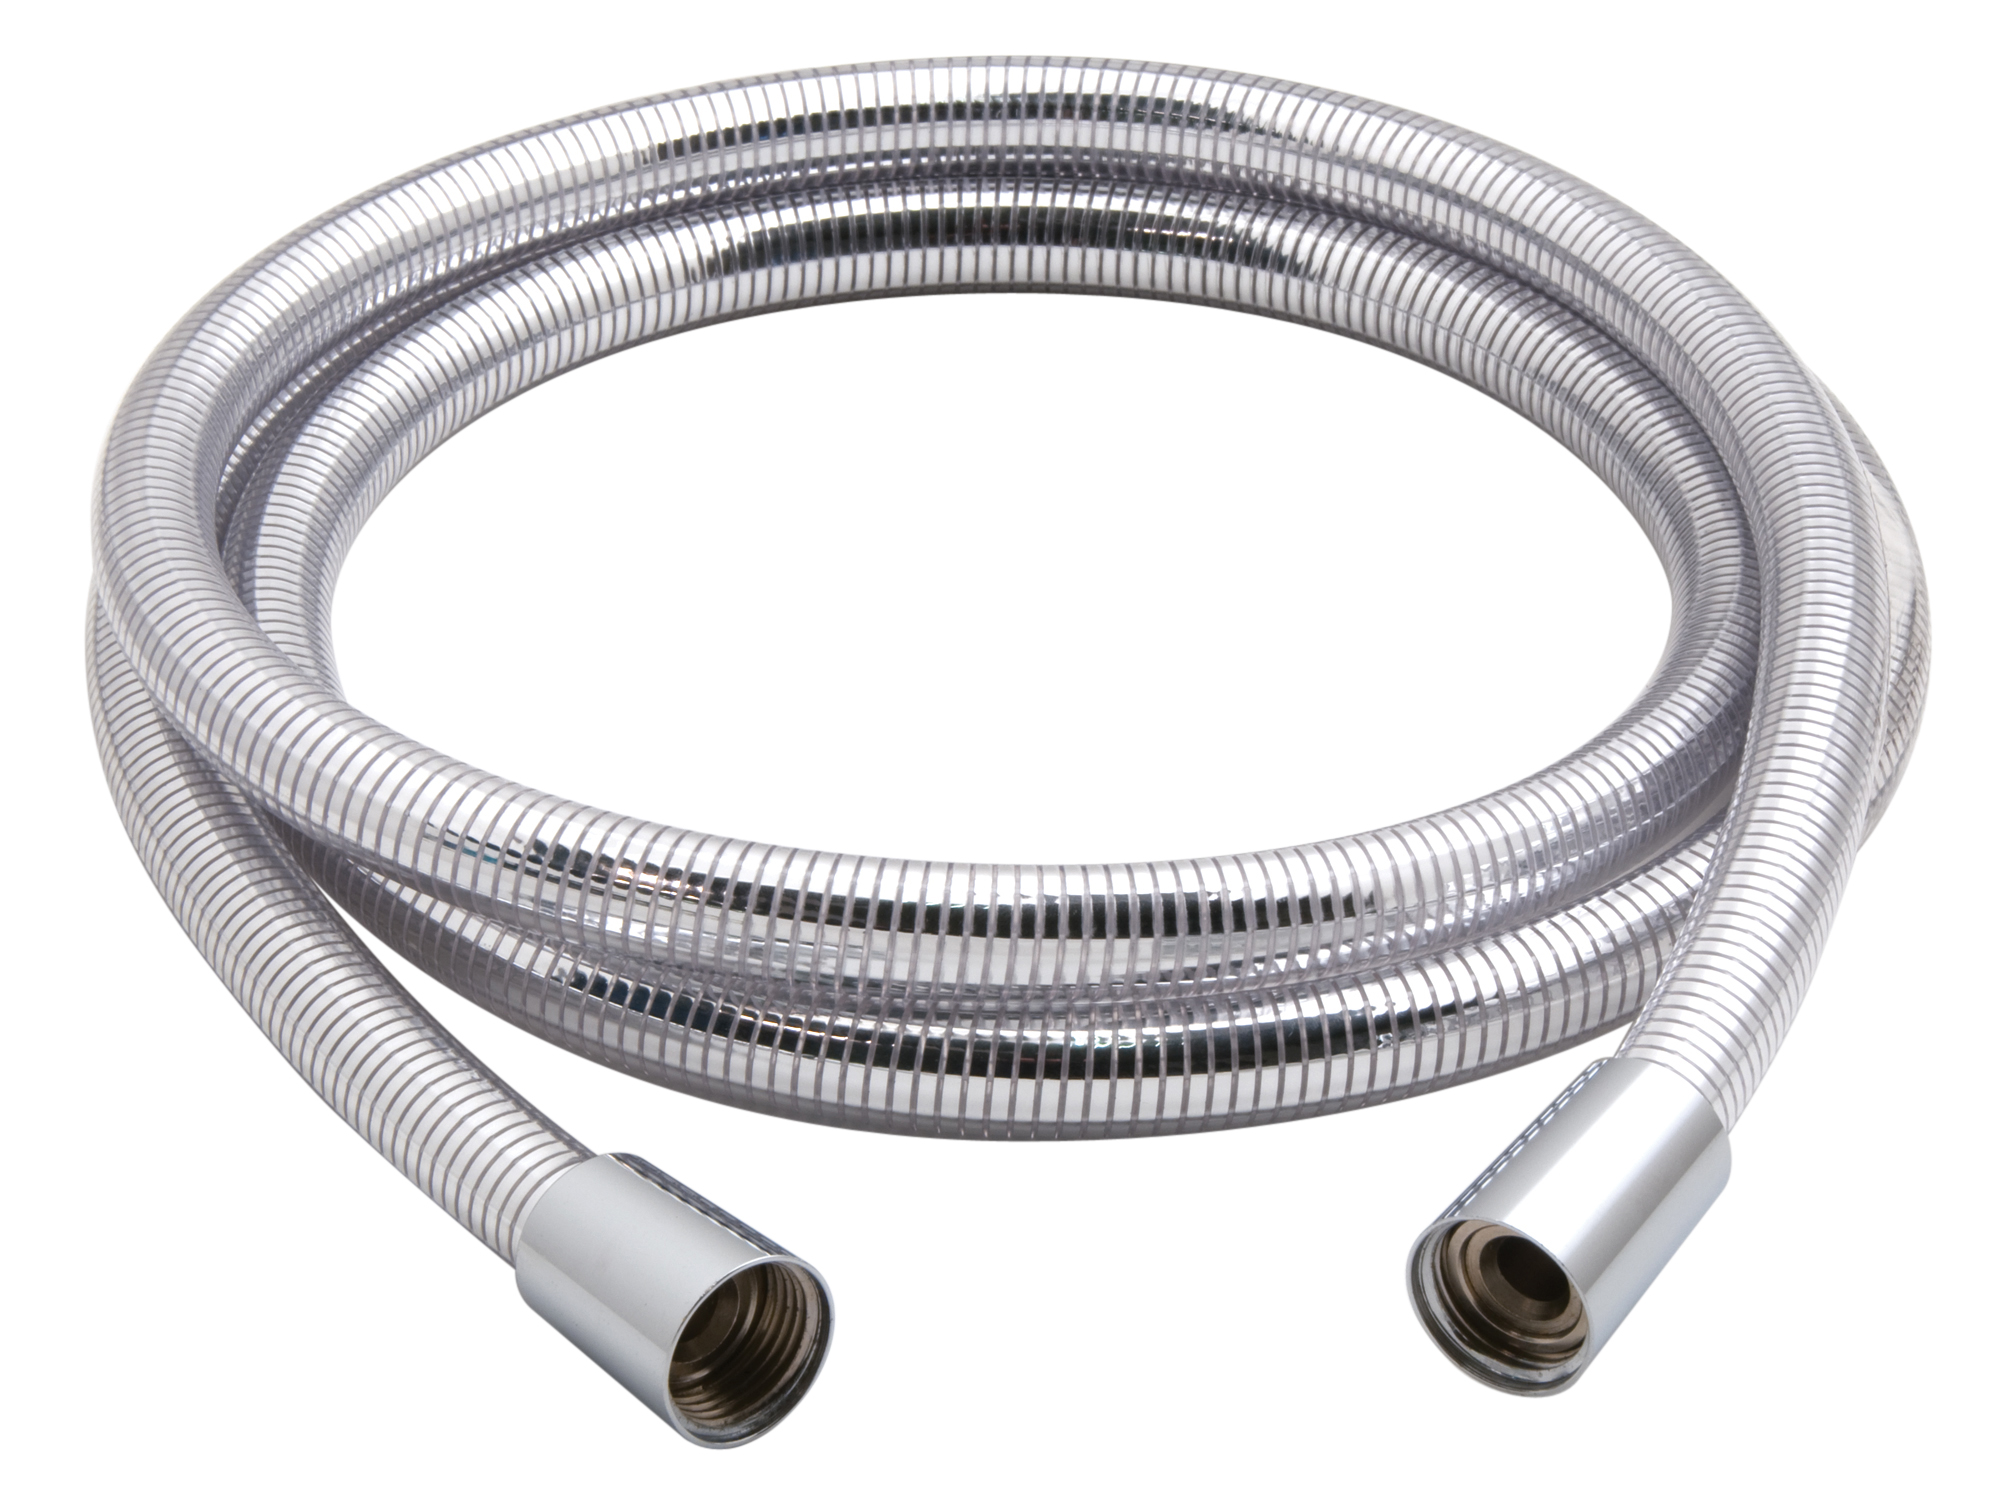 Bathroom hose